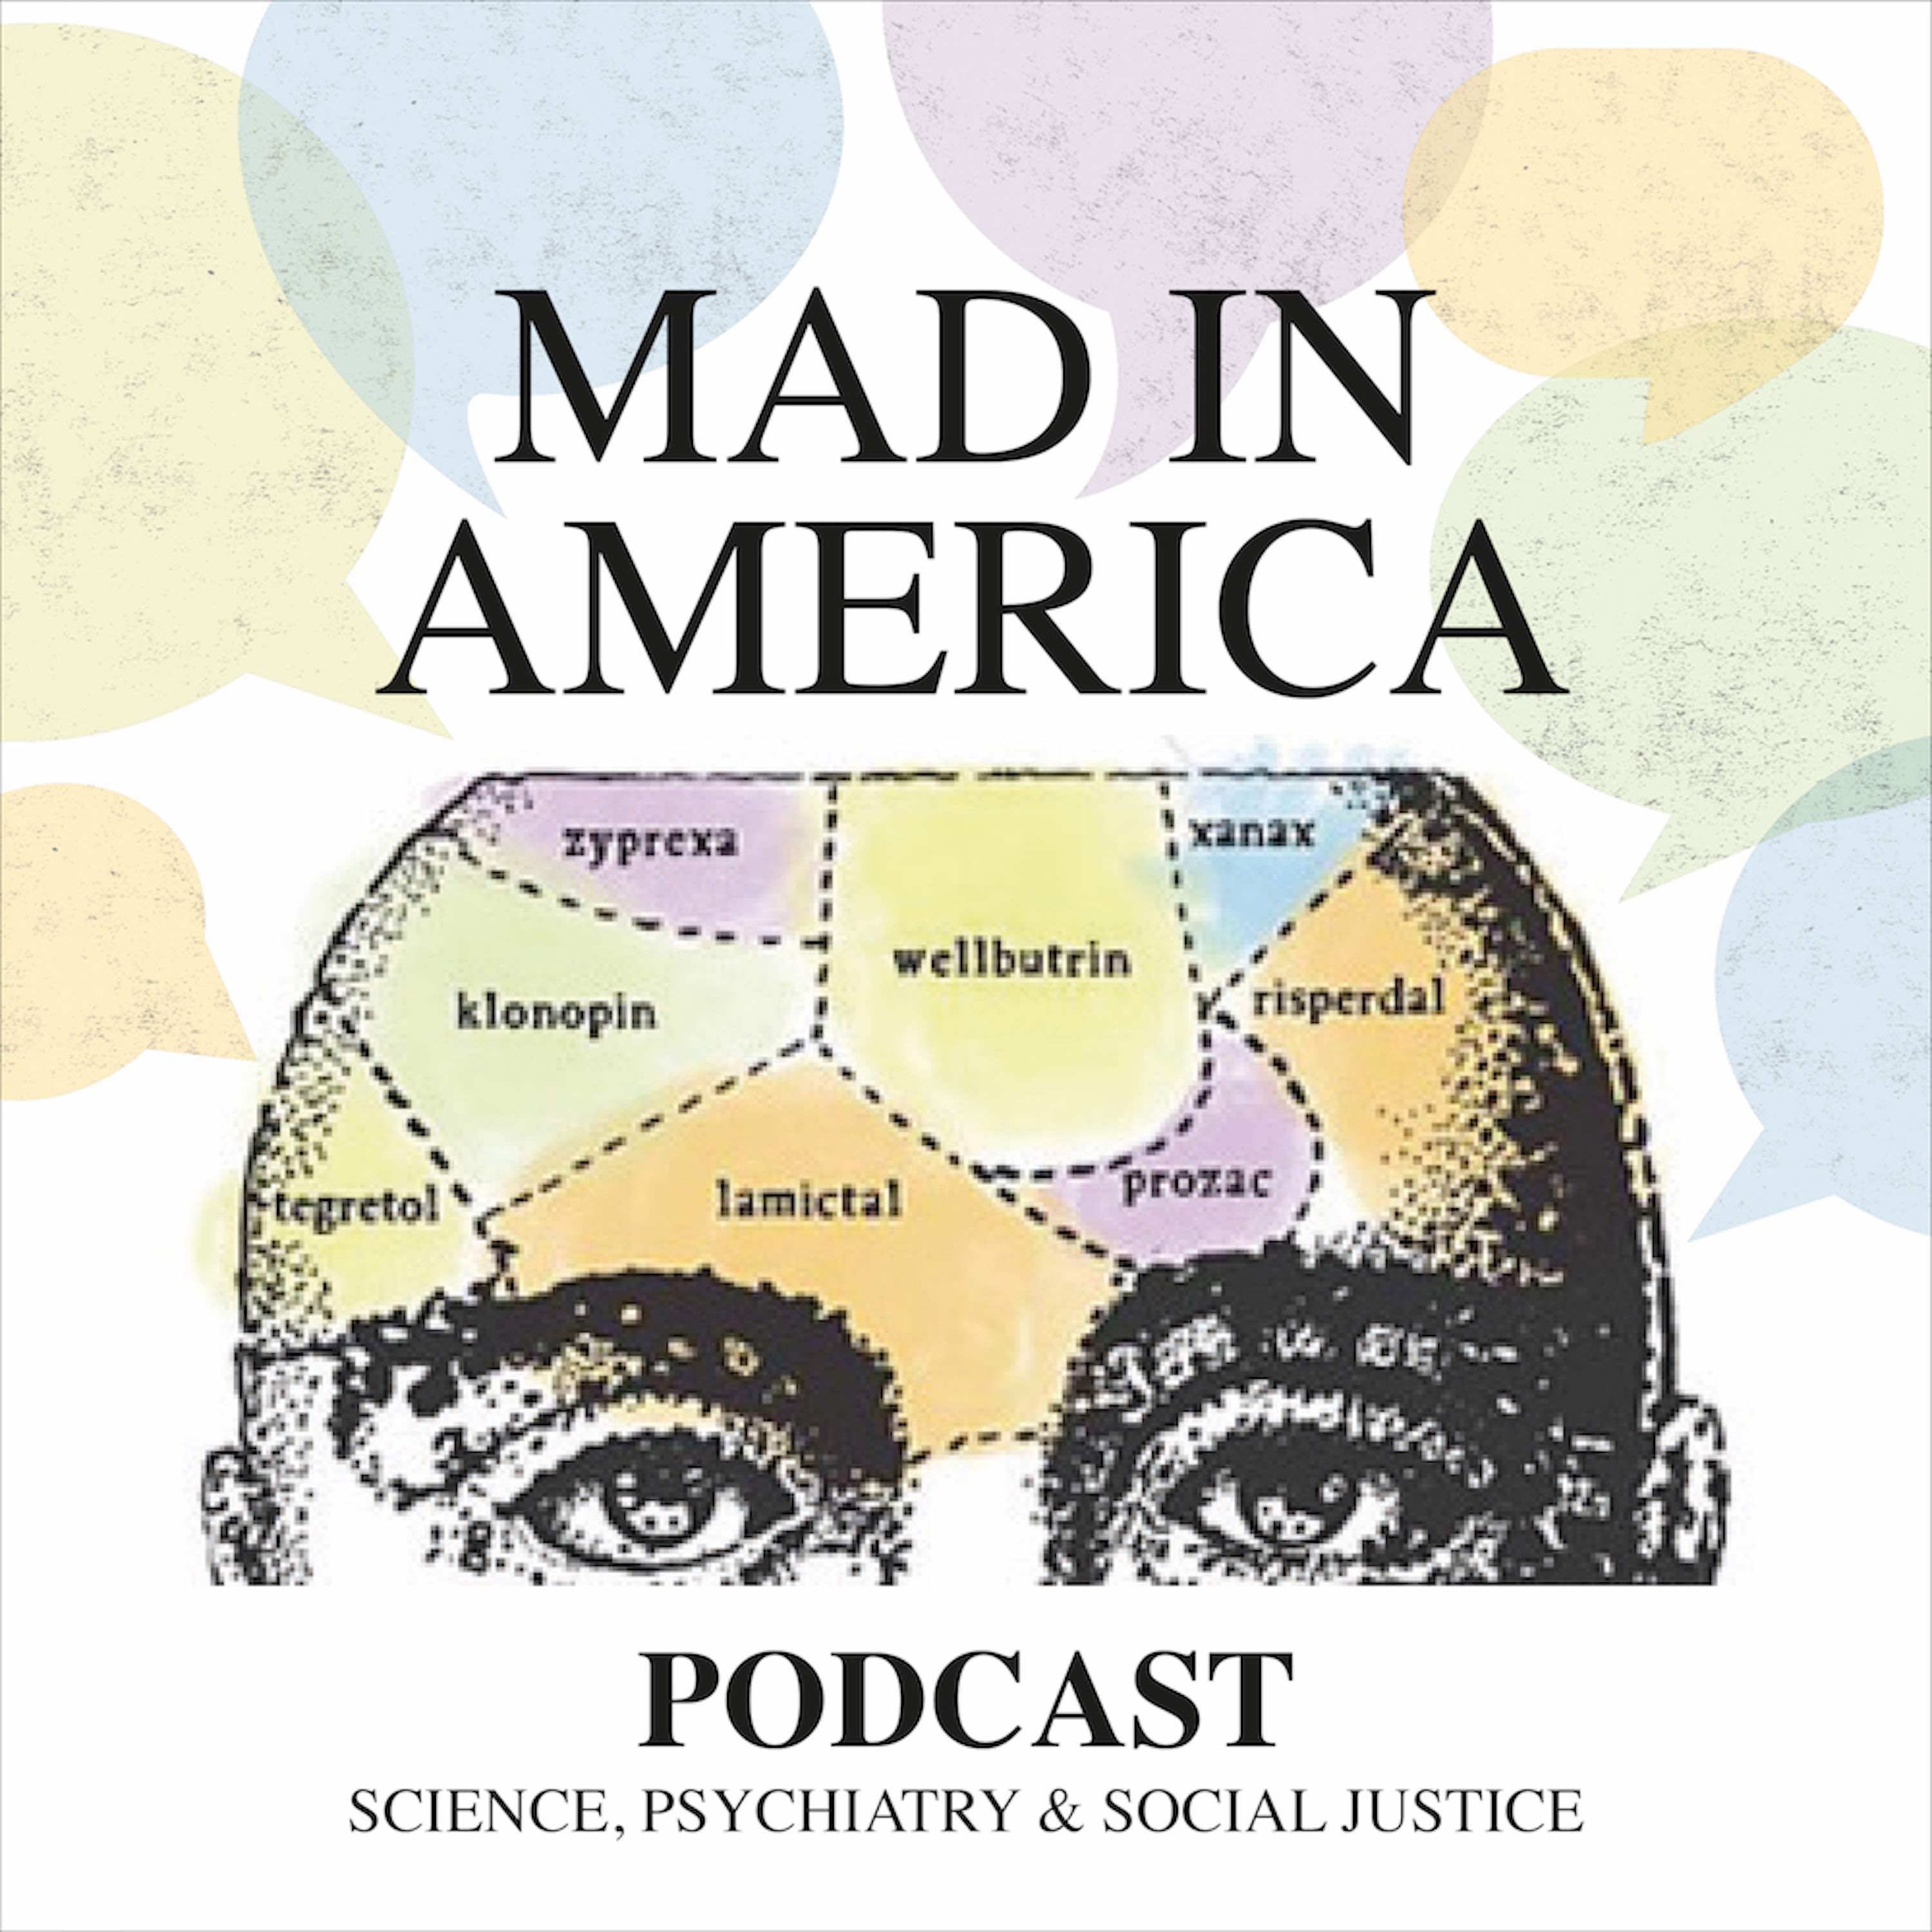 Mad in America: Rethinking Mental Health - Dorothy Dundas - Survivorship, Resistance, and Connection